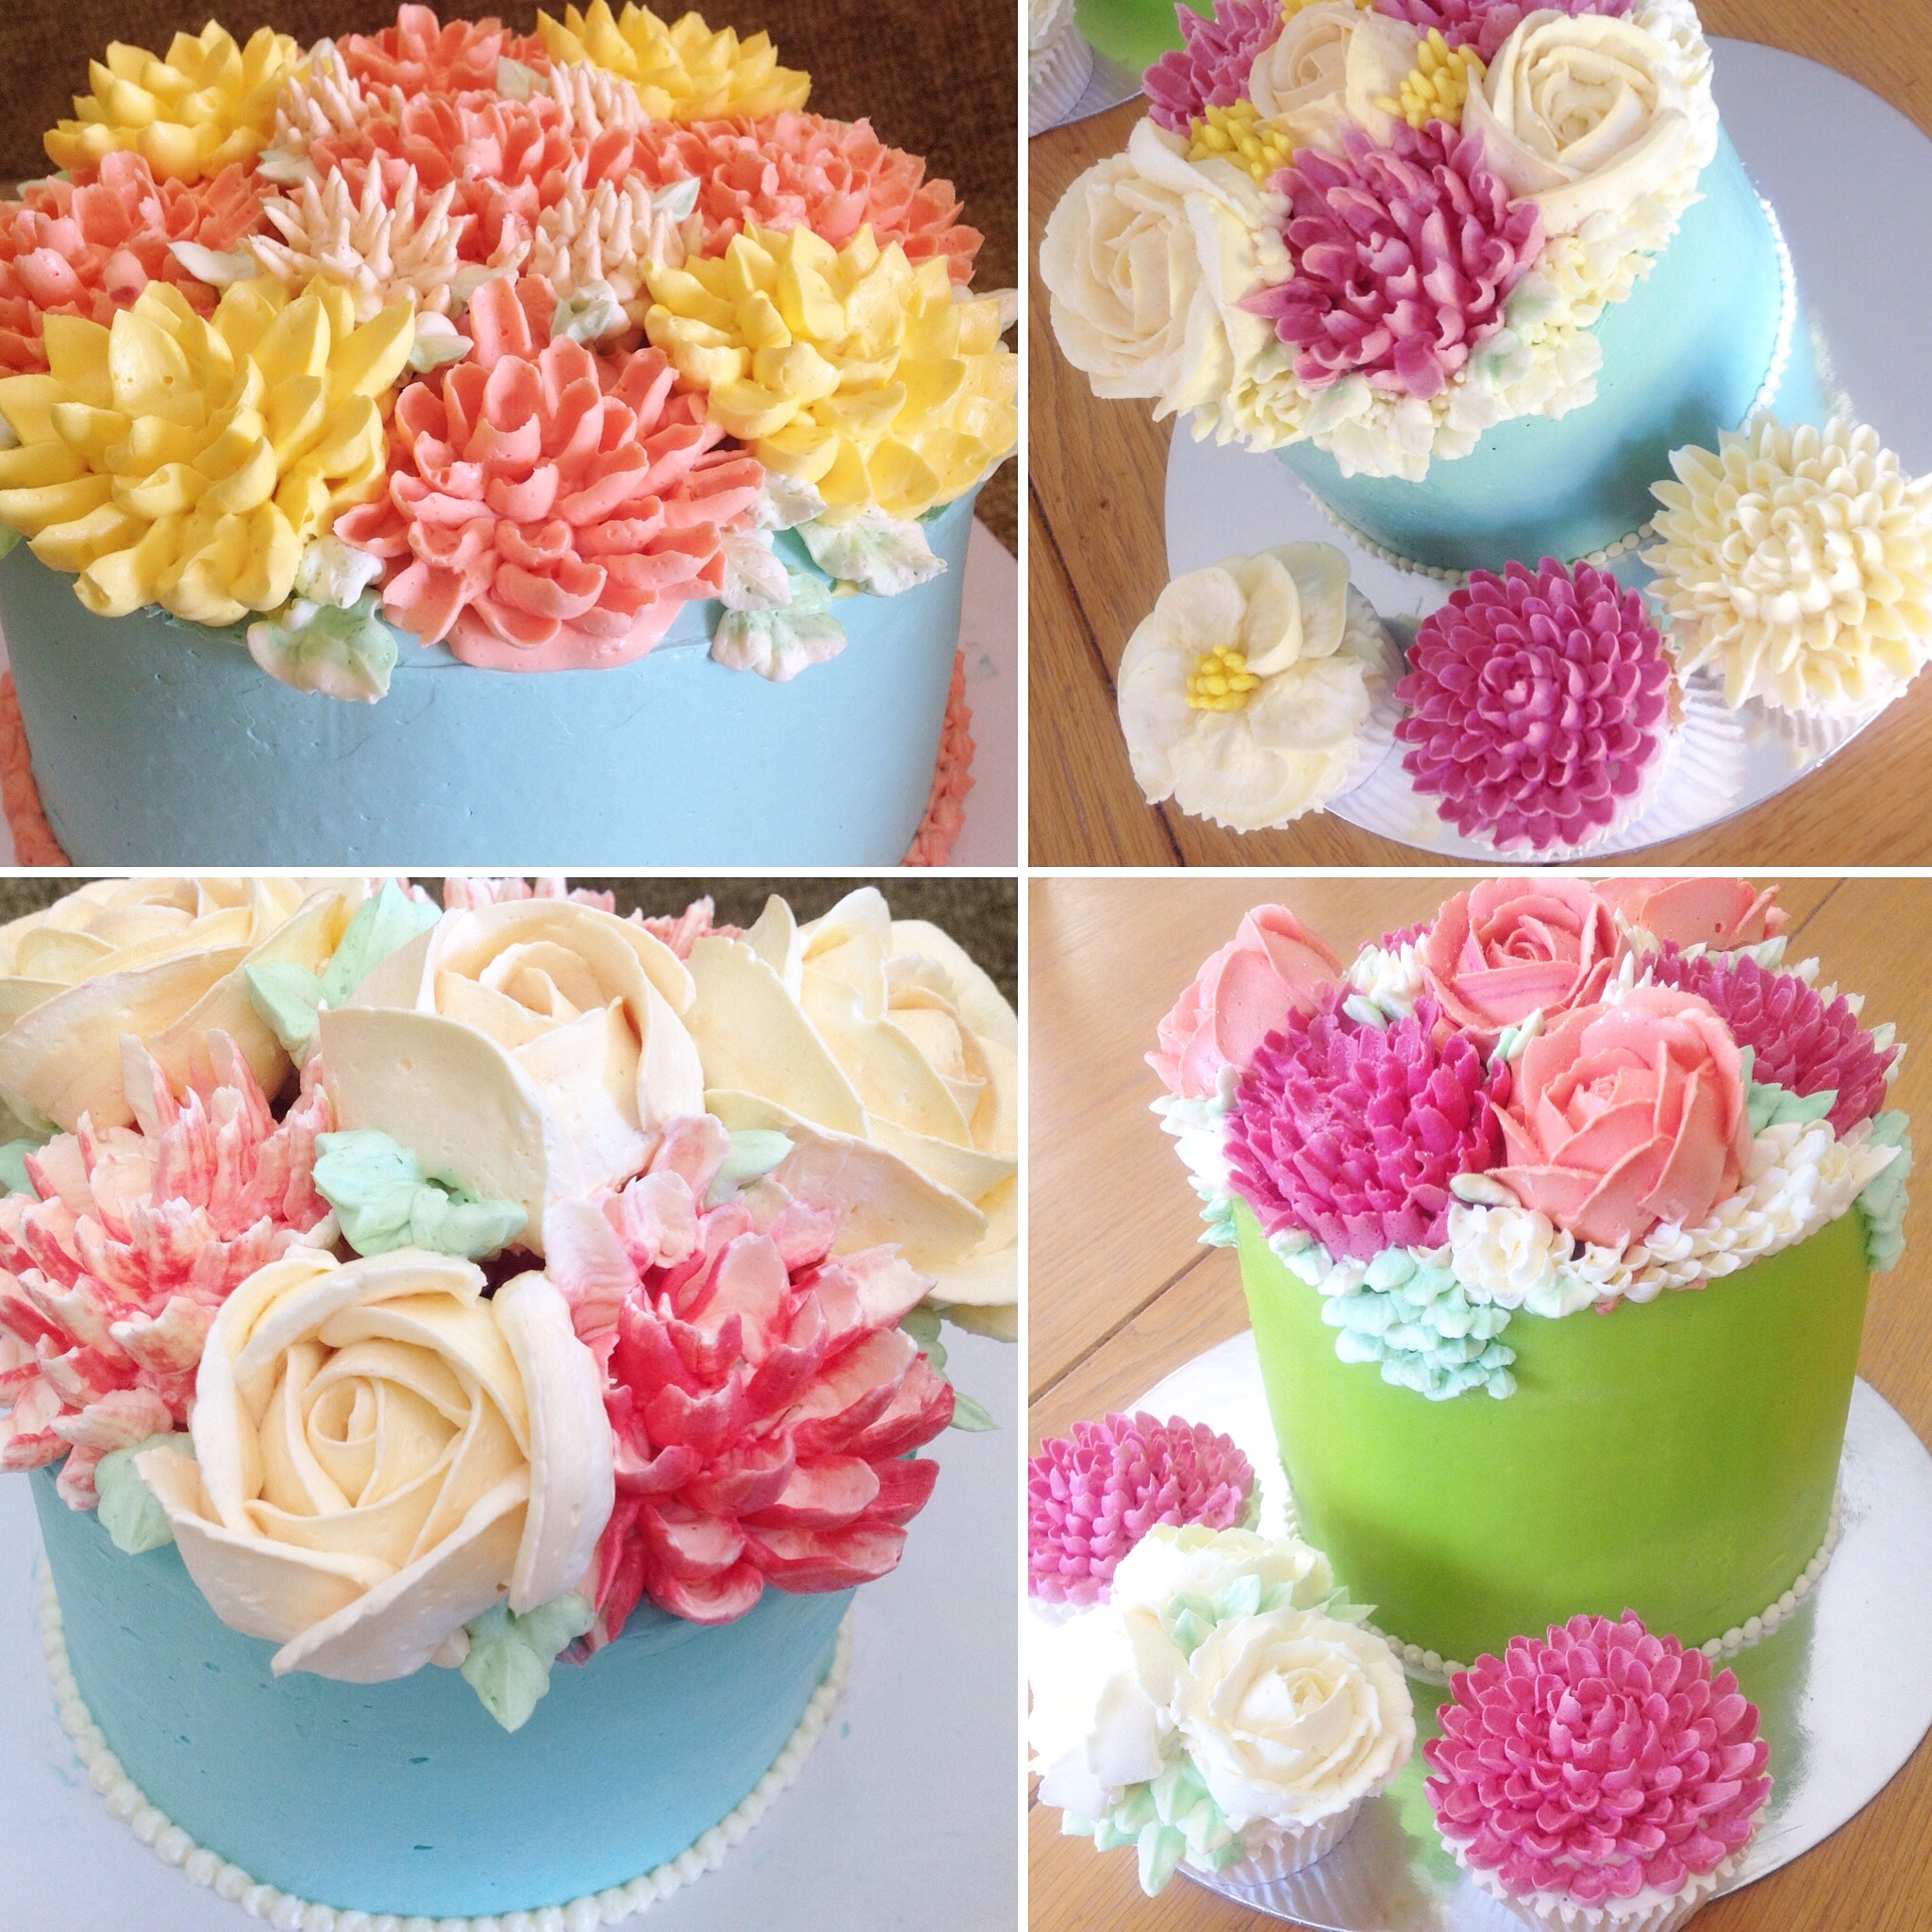 Cake Decorating Piping Flowers : Piped Buttercream Flower Cake